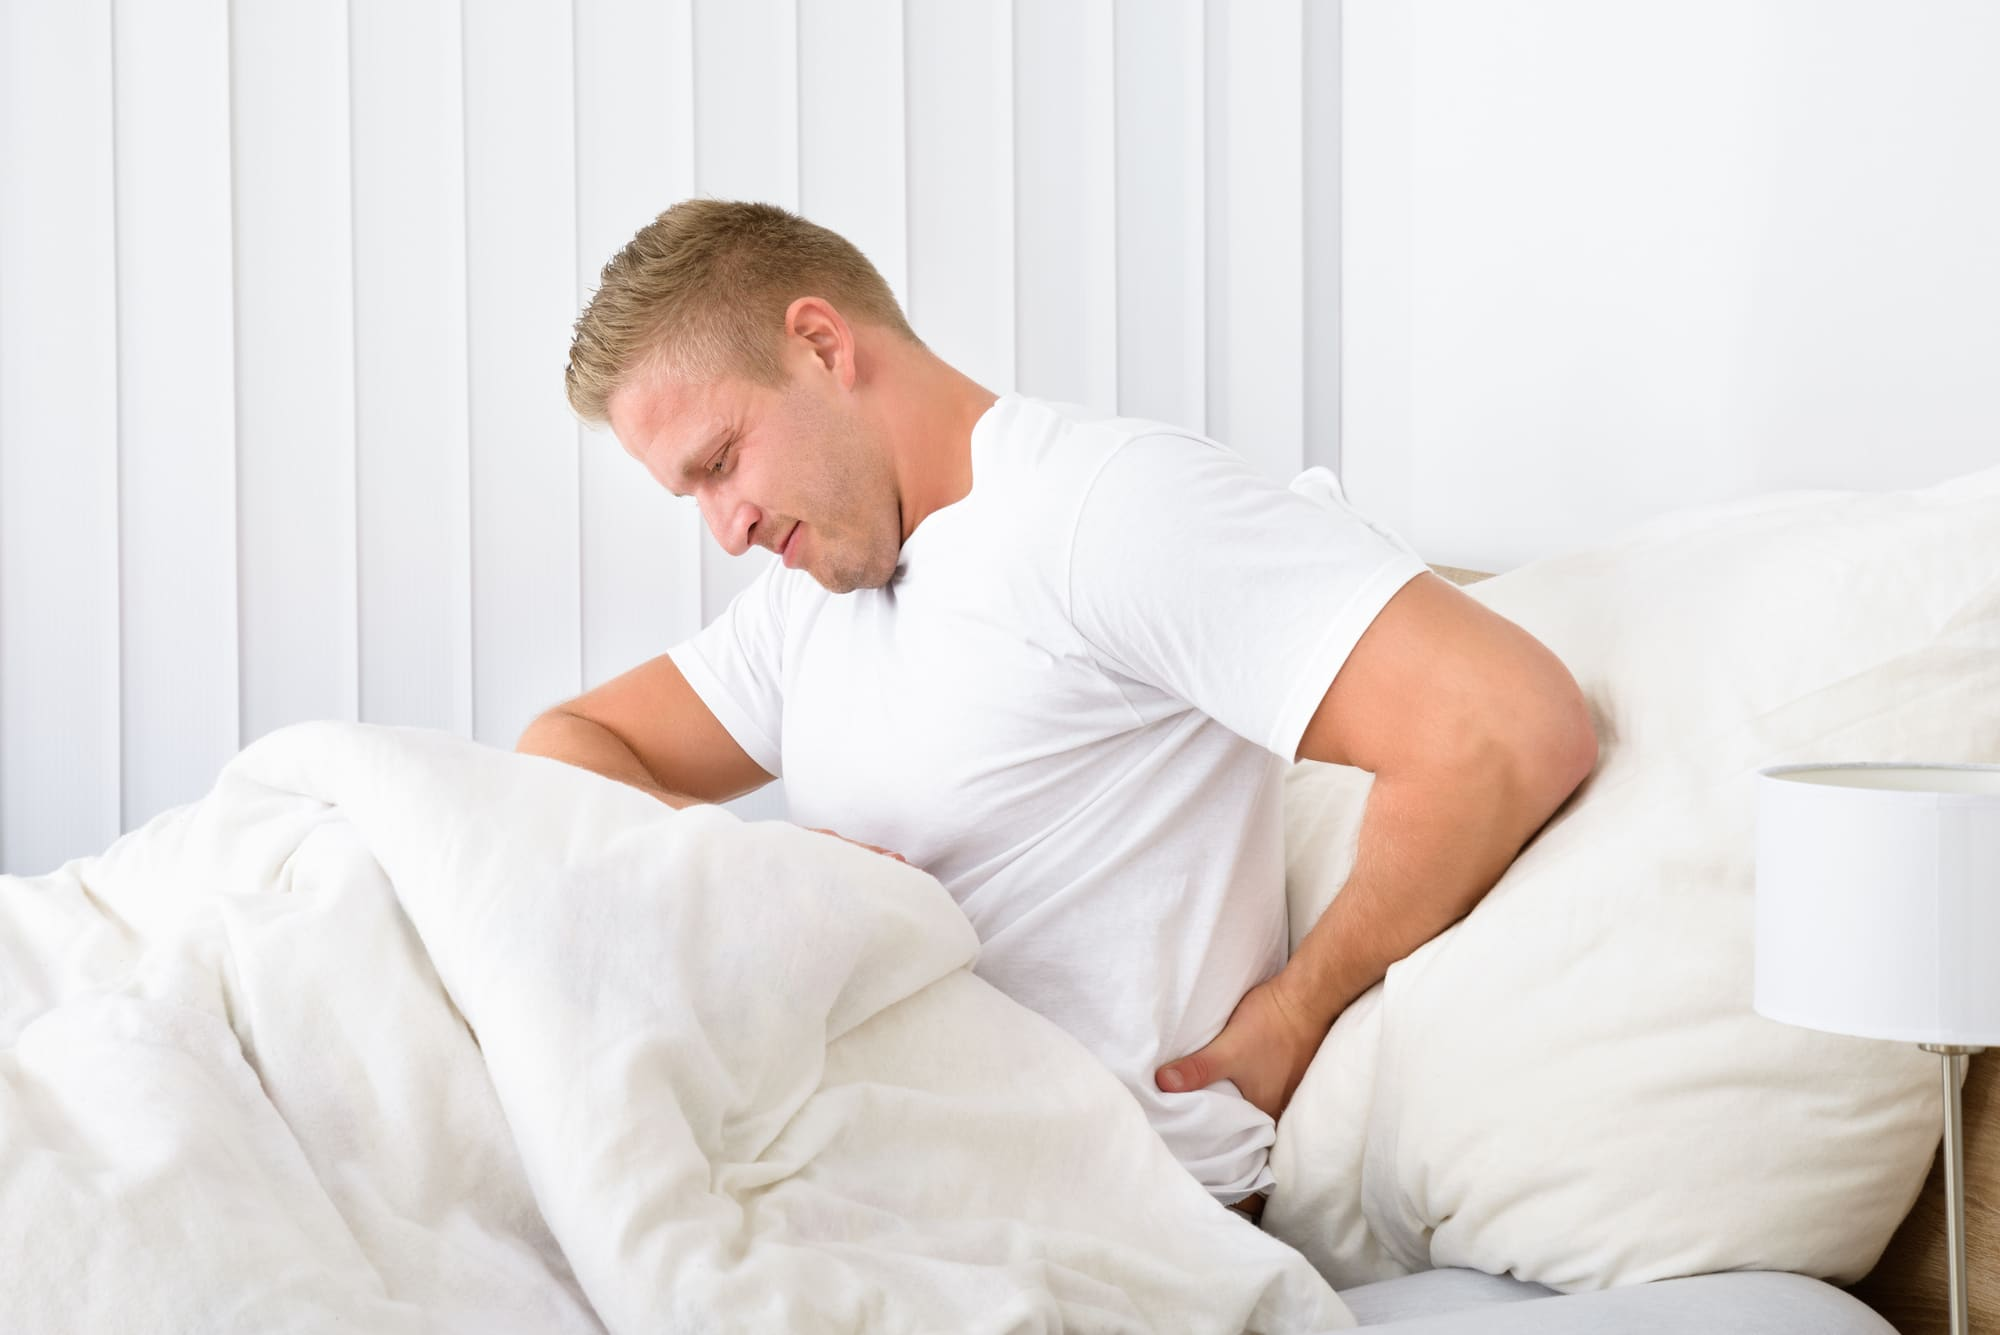 man on bed suffering discomfort